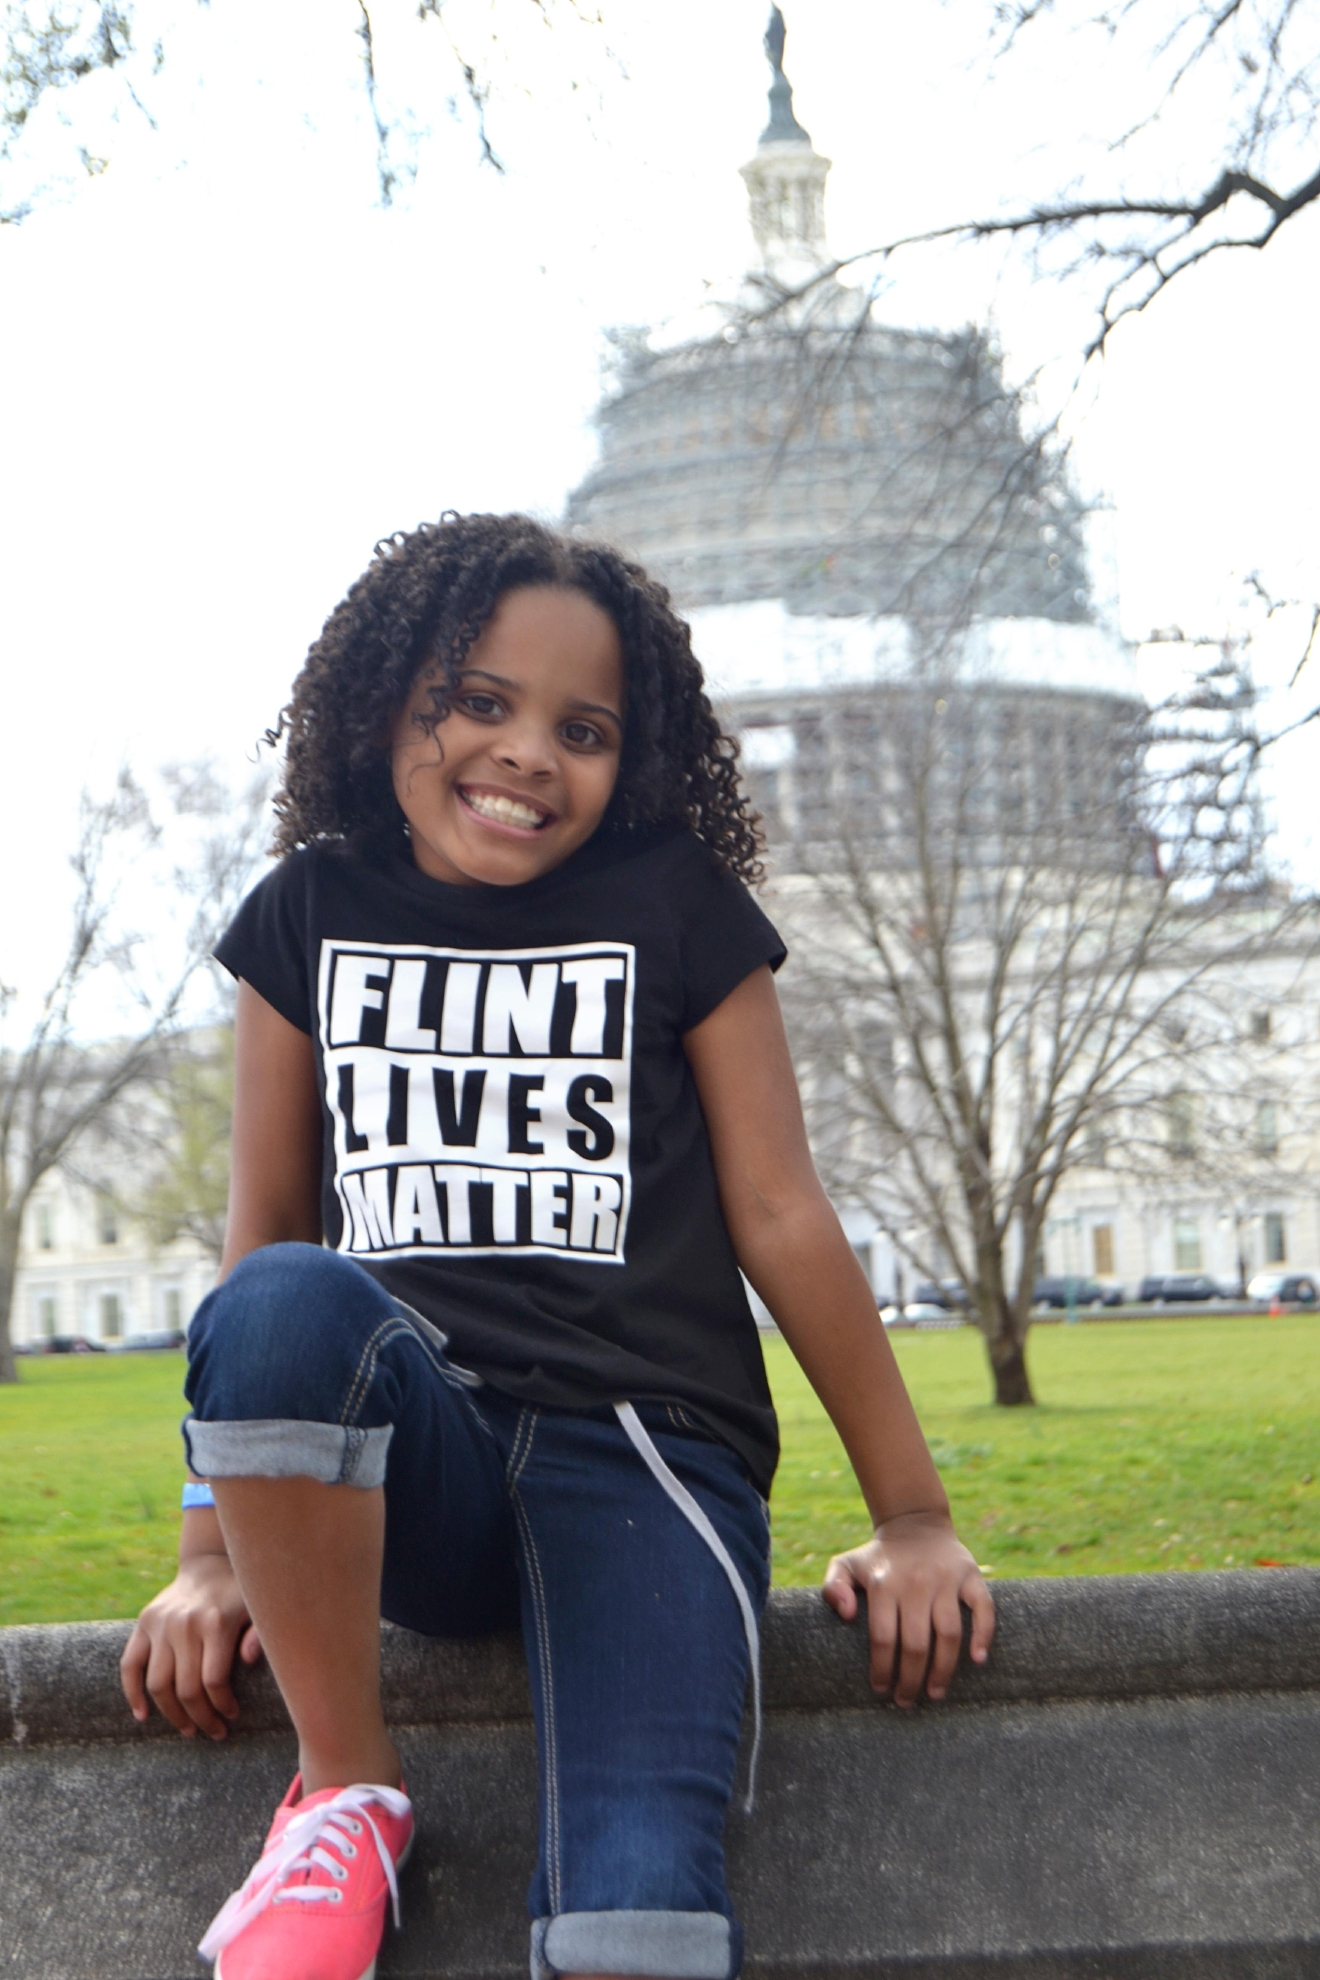 Eight-year-old Amariyanna Copeny wrote a letting to President Obama about Flint water, prompting a visit from the president. (Courtesy LuLu Brezzell)